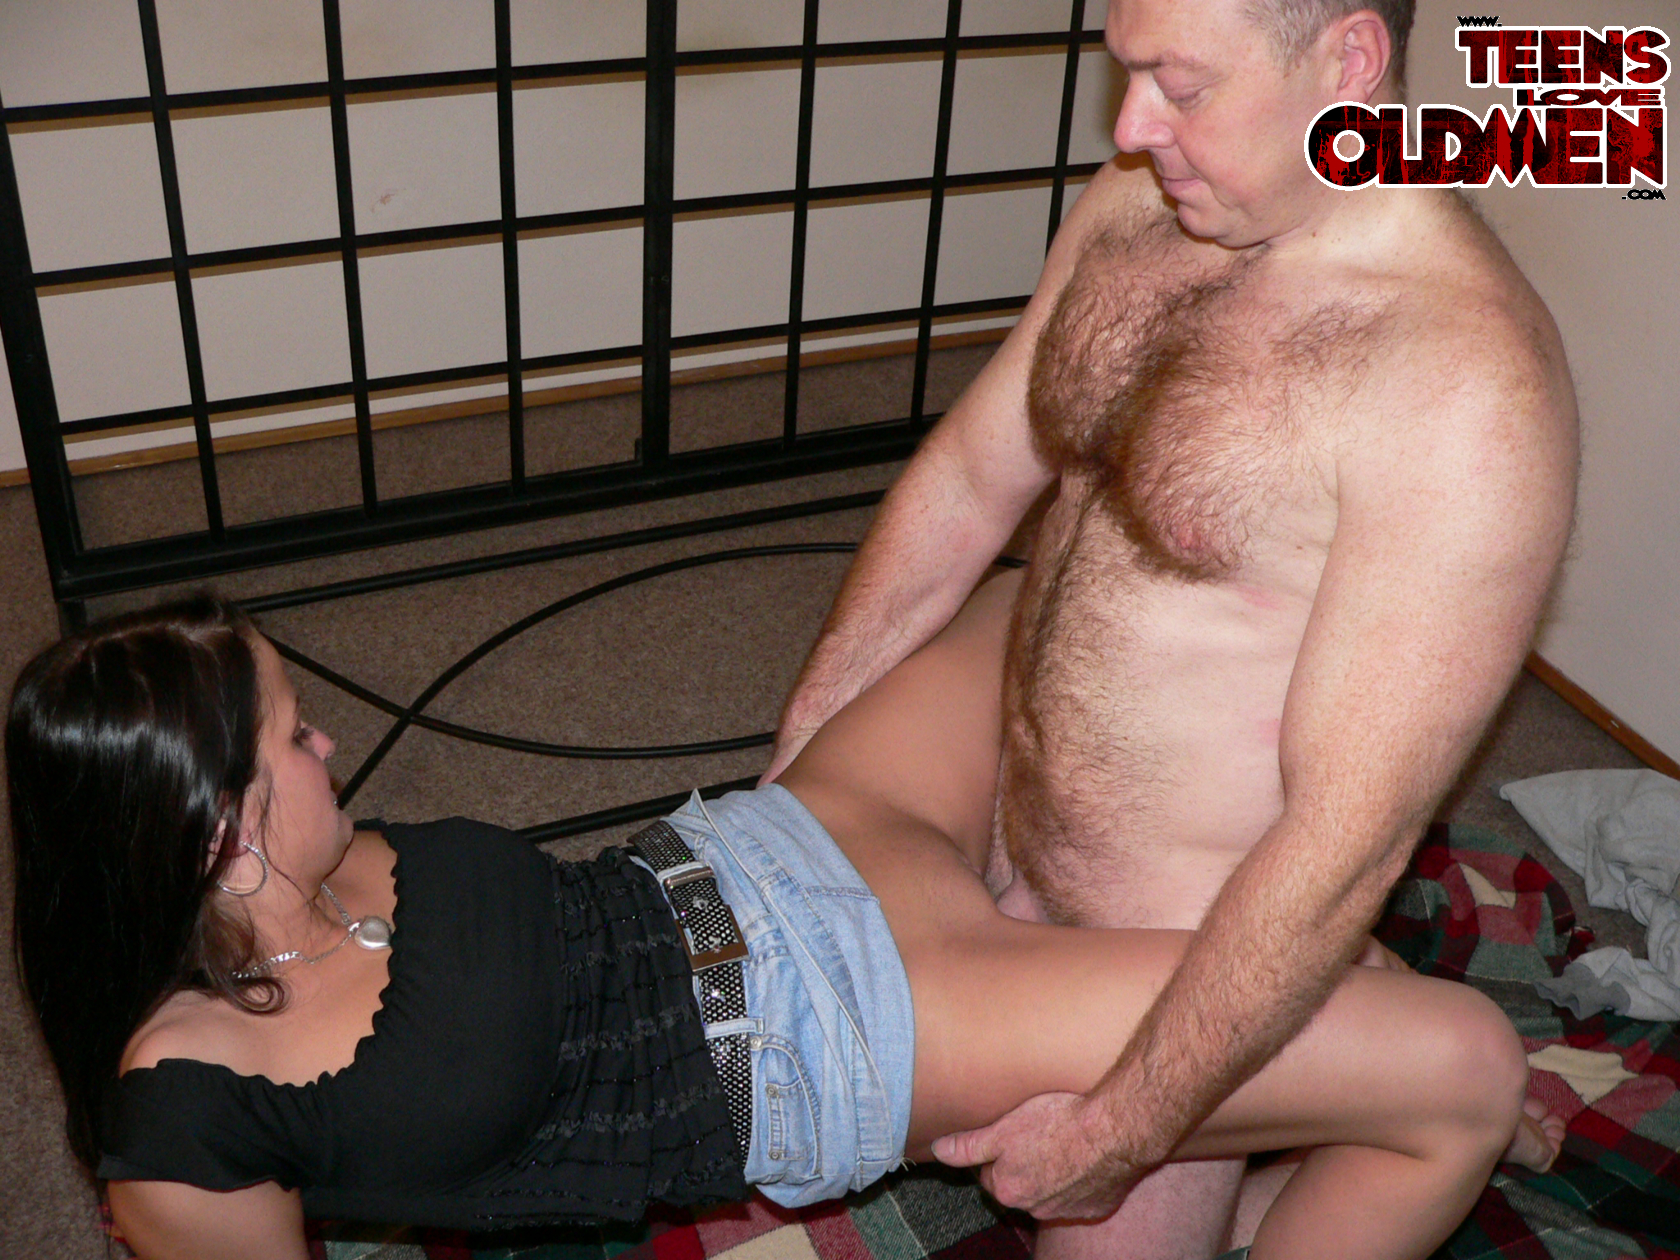 Female domination male submission story